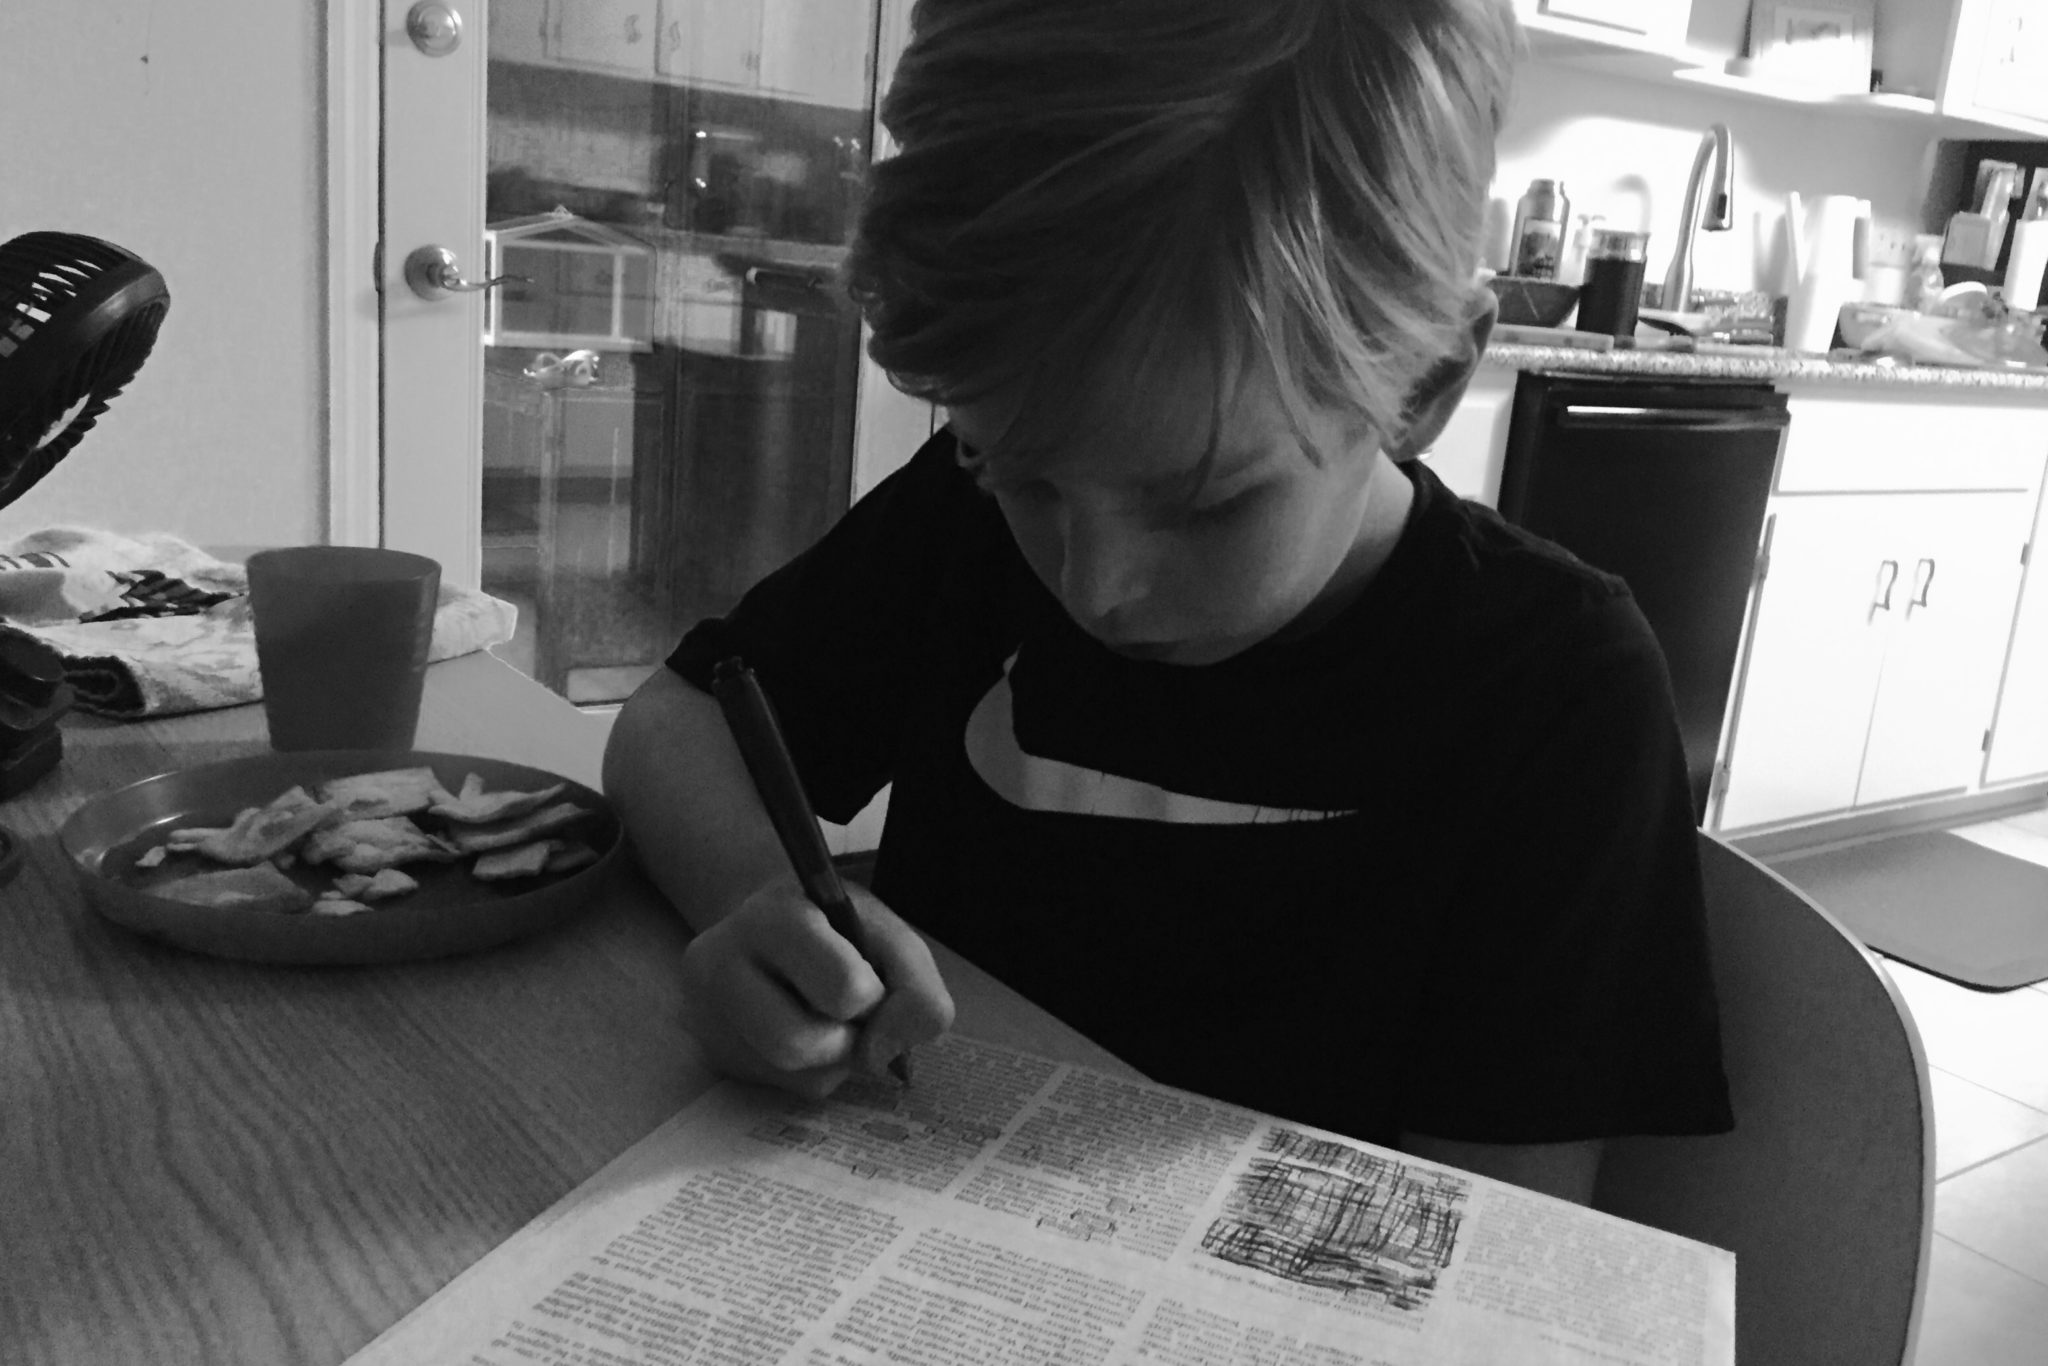 Avett making a his first blackout poetry.